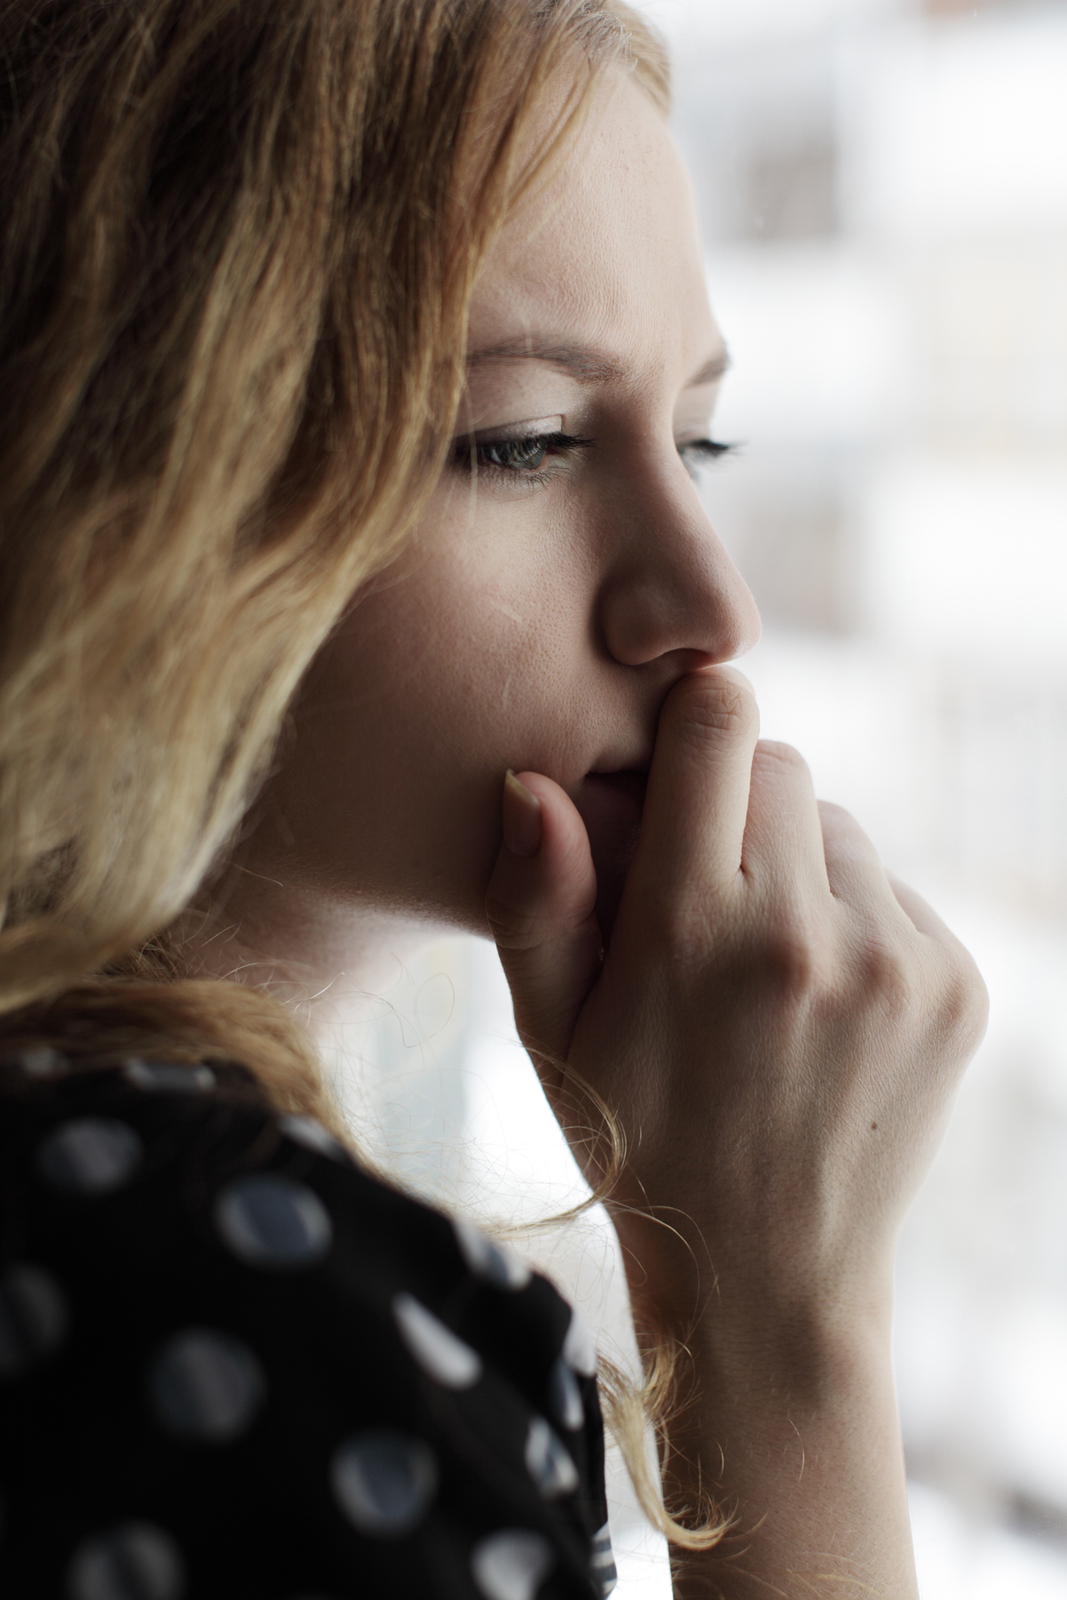 A close up of a woman holding her hand against her mouth while looking out a window. She appears worried about something as she is deep in thought. This could symbolize the fear and apprehension of a young adult. We offer transitions counseling in West Bloomfield, MI for young adults adapting to change. Contact a young adult therapist for young adult therapy and other services.